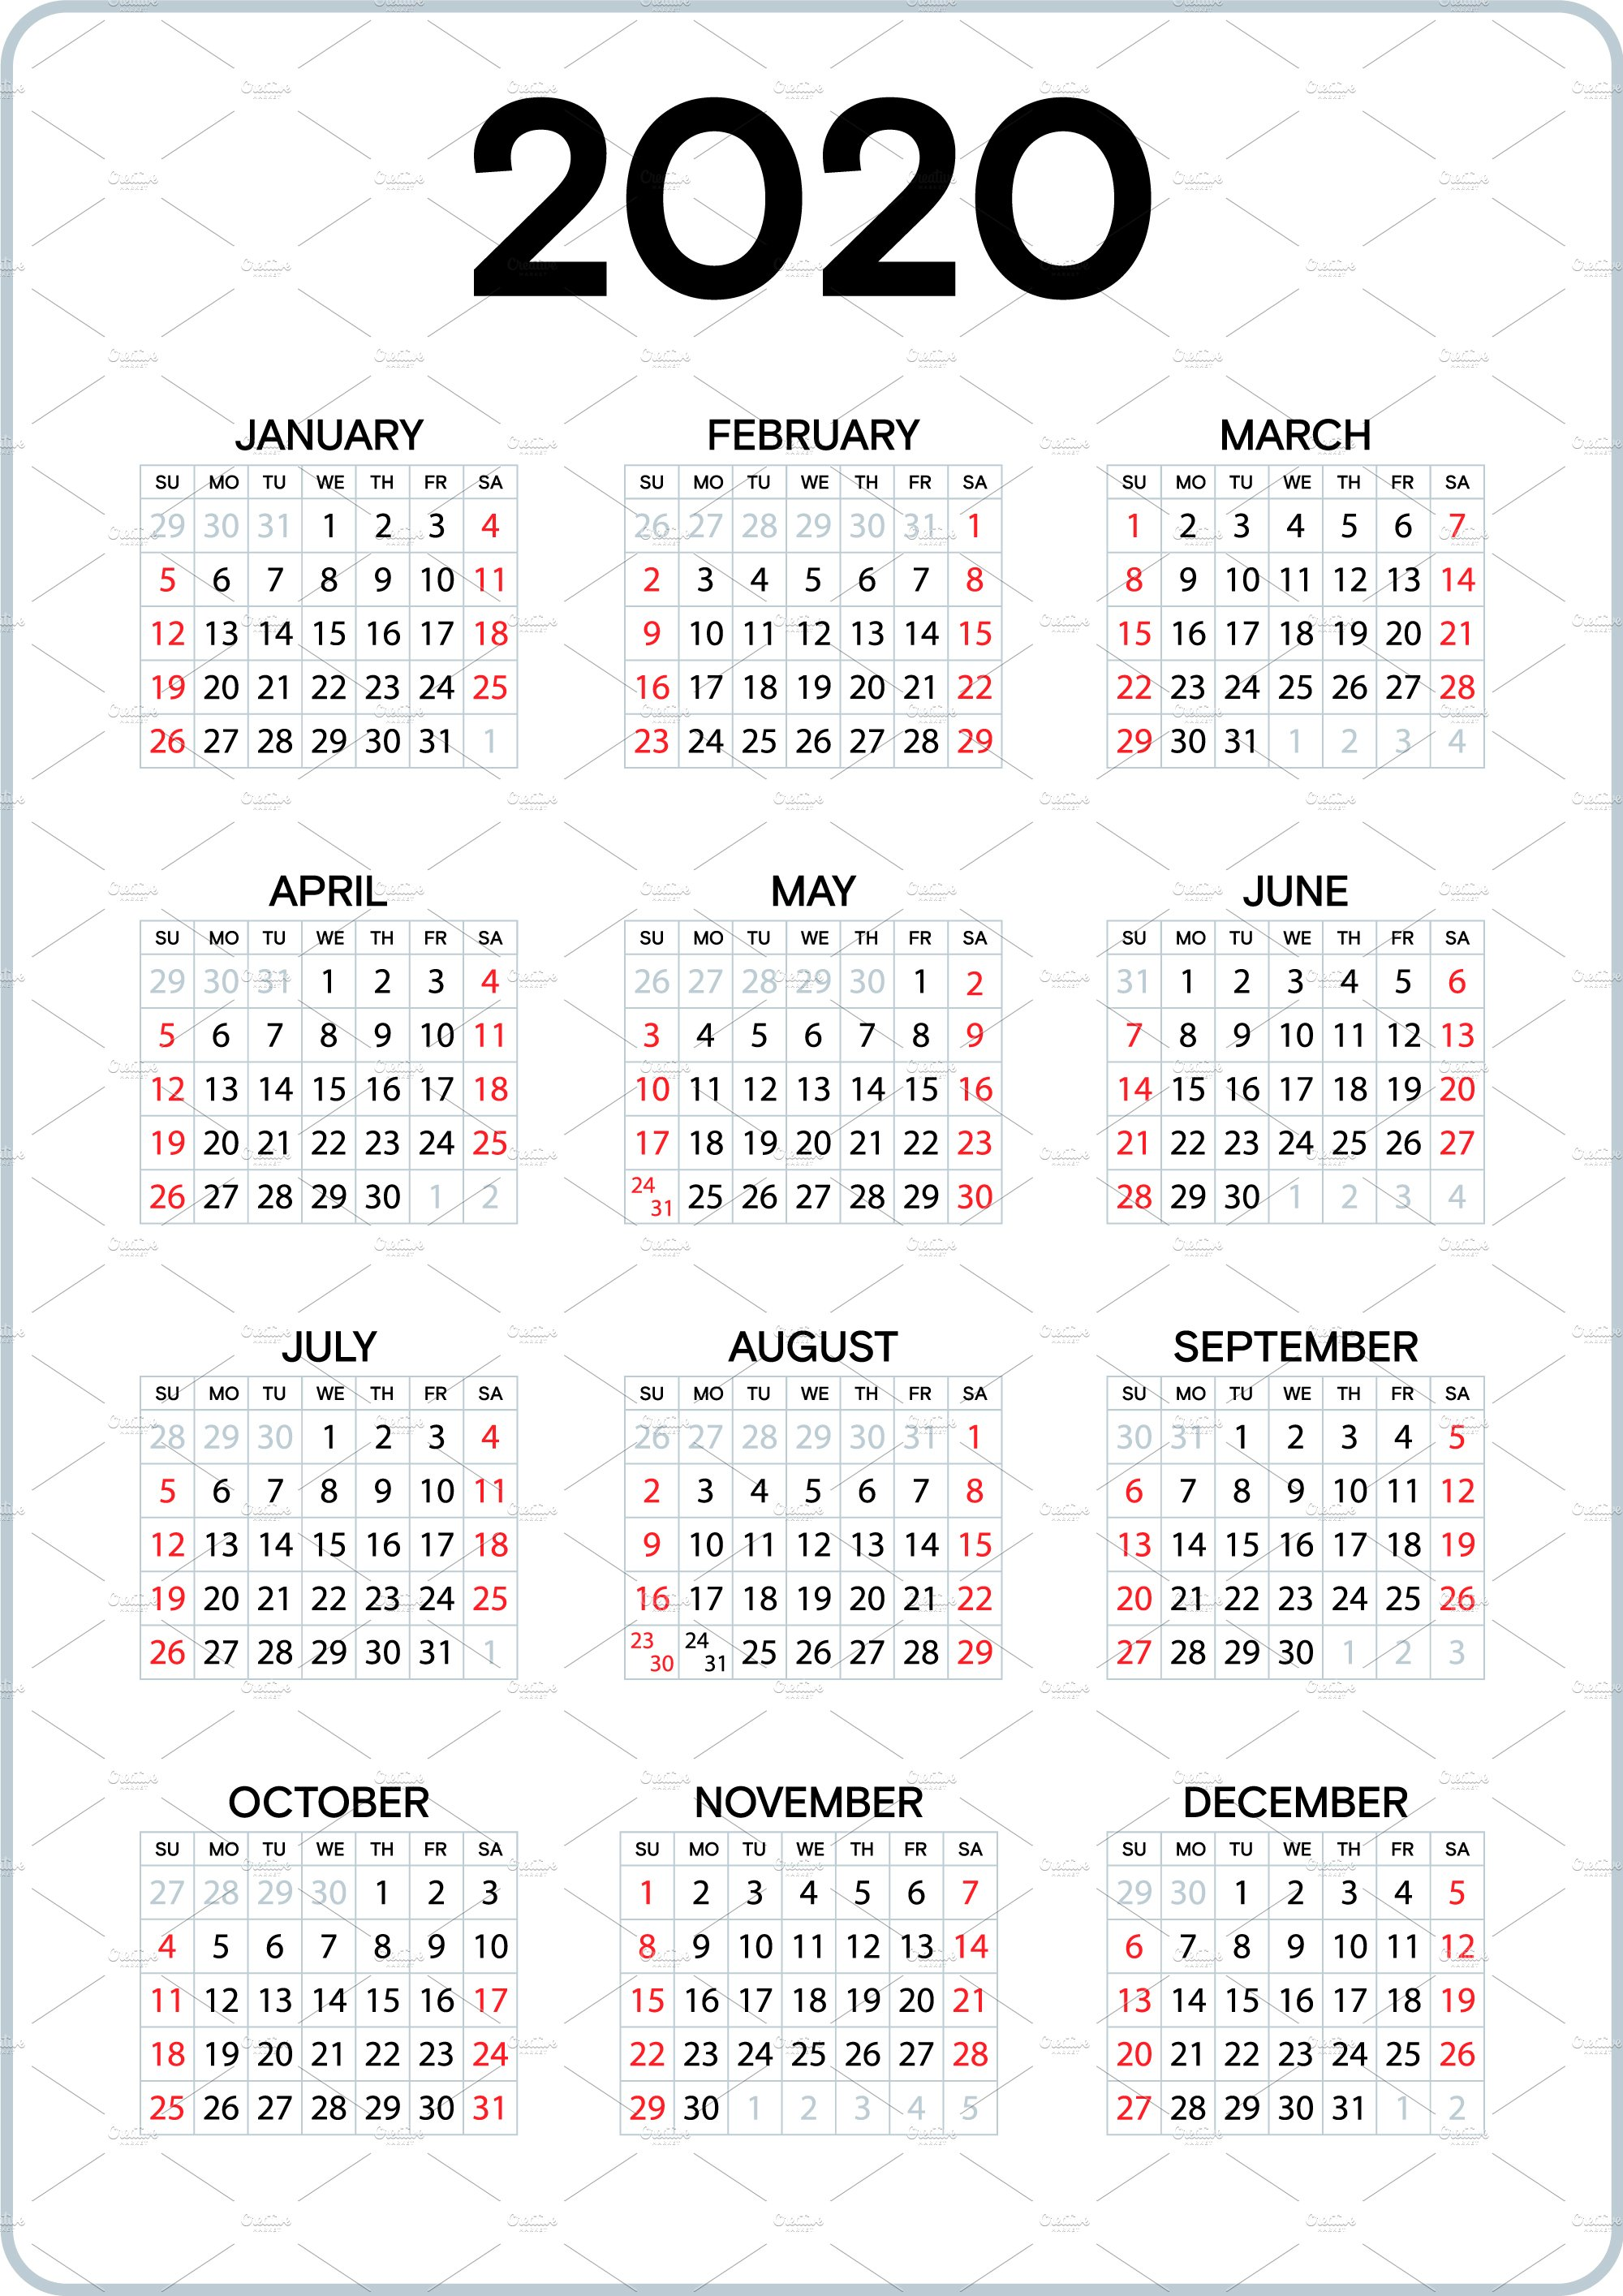 2020calendarcw_2020 calendar with week numbers_cw 26 2020_2020 ...